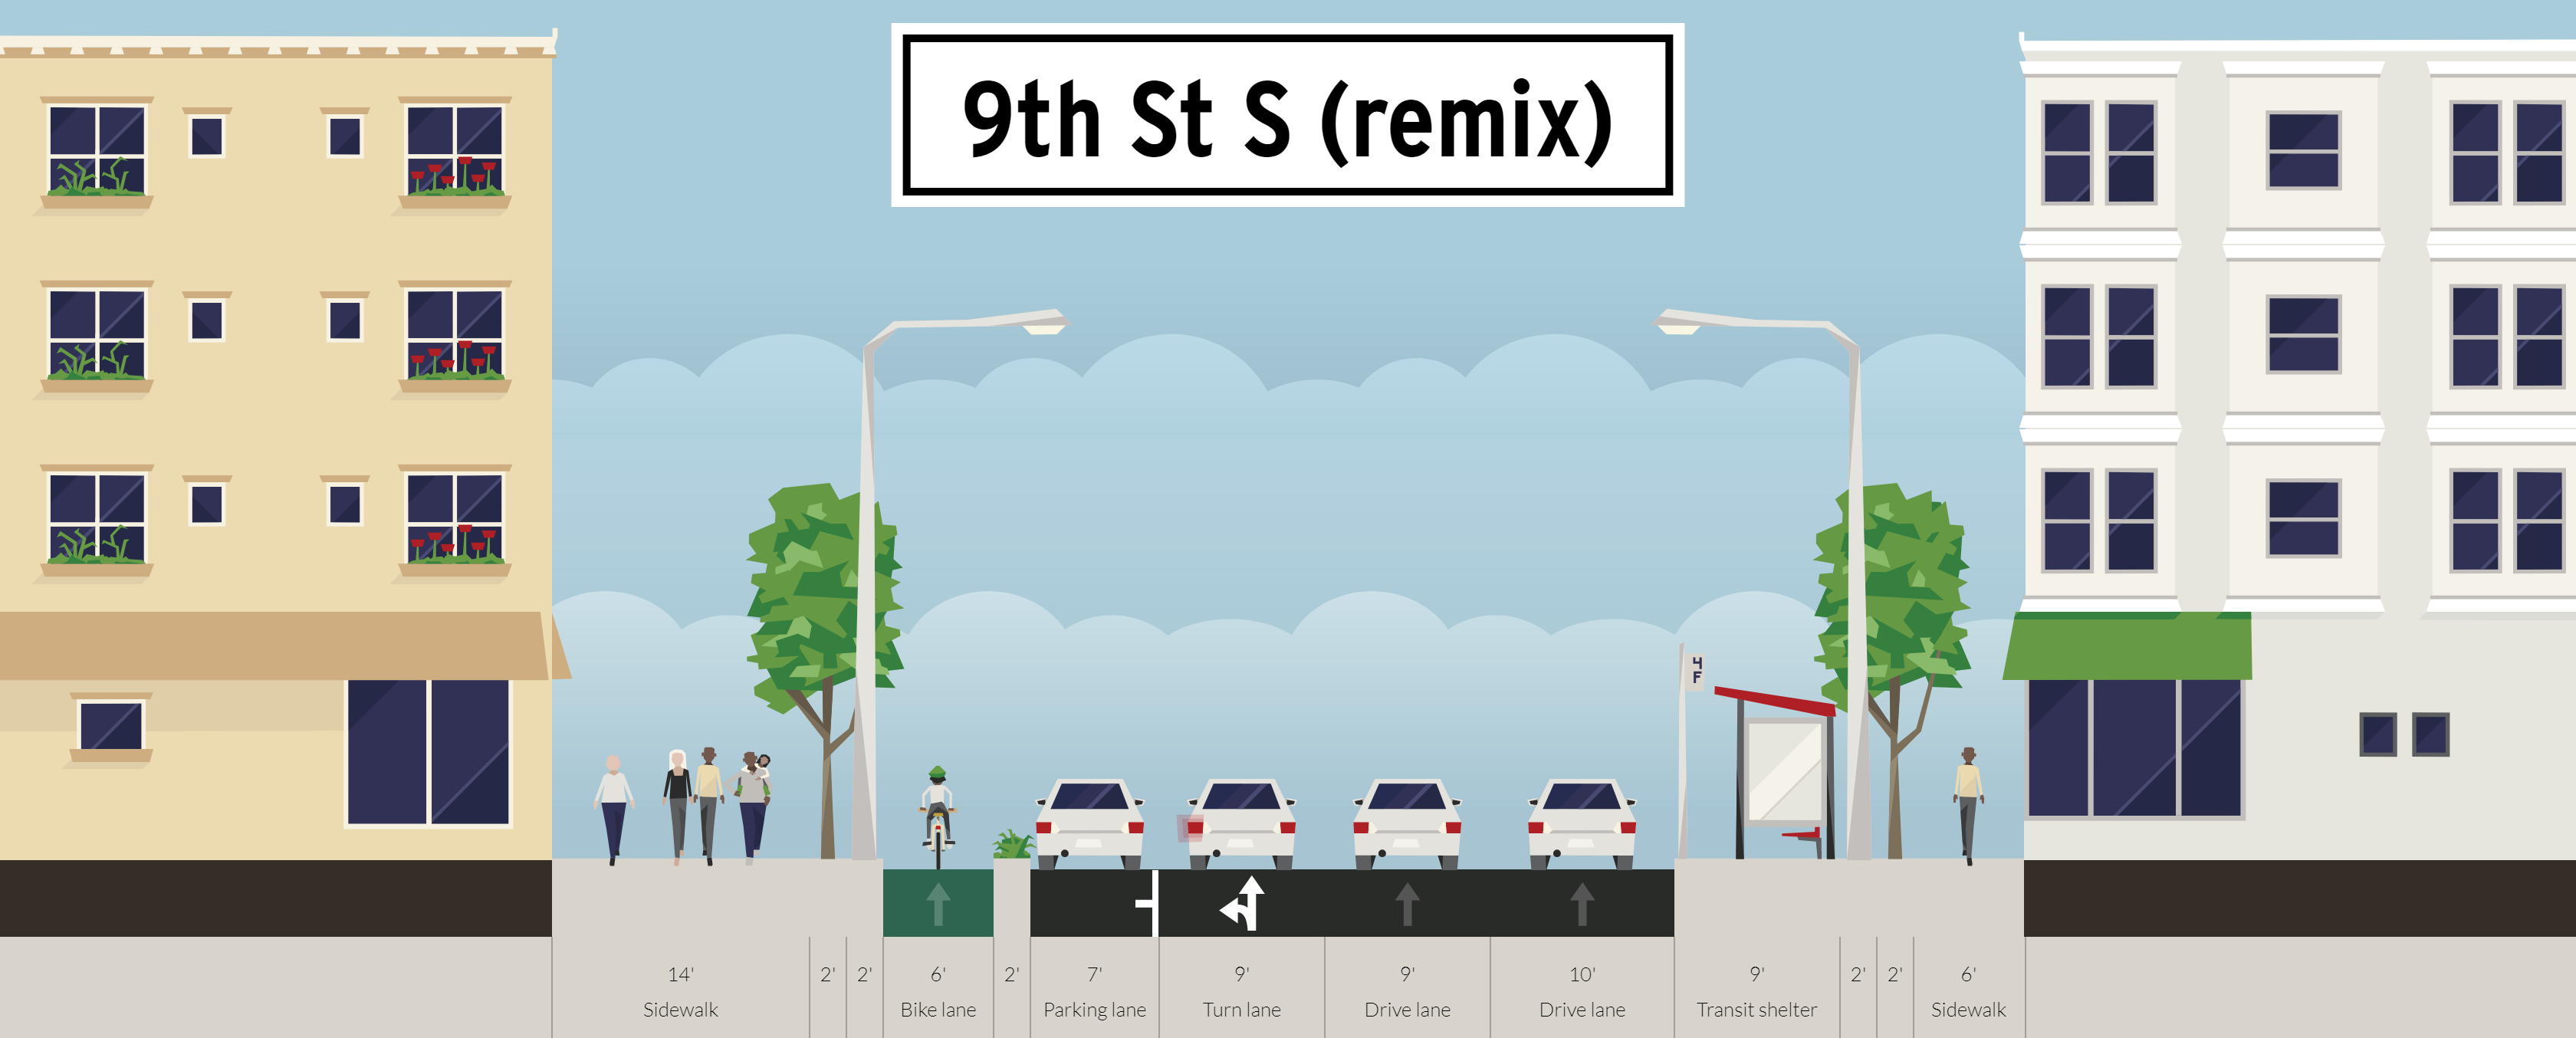 Rendering of 9th St S including a protected bikeway on the left hand side